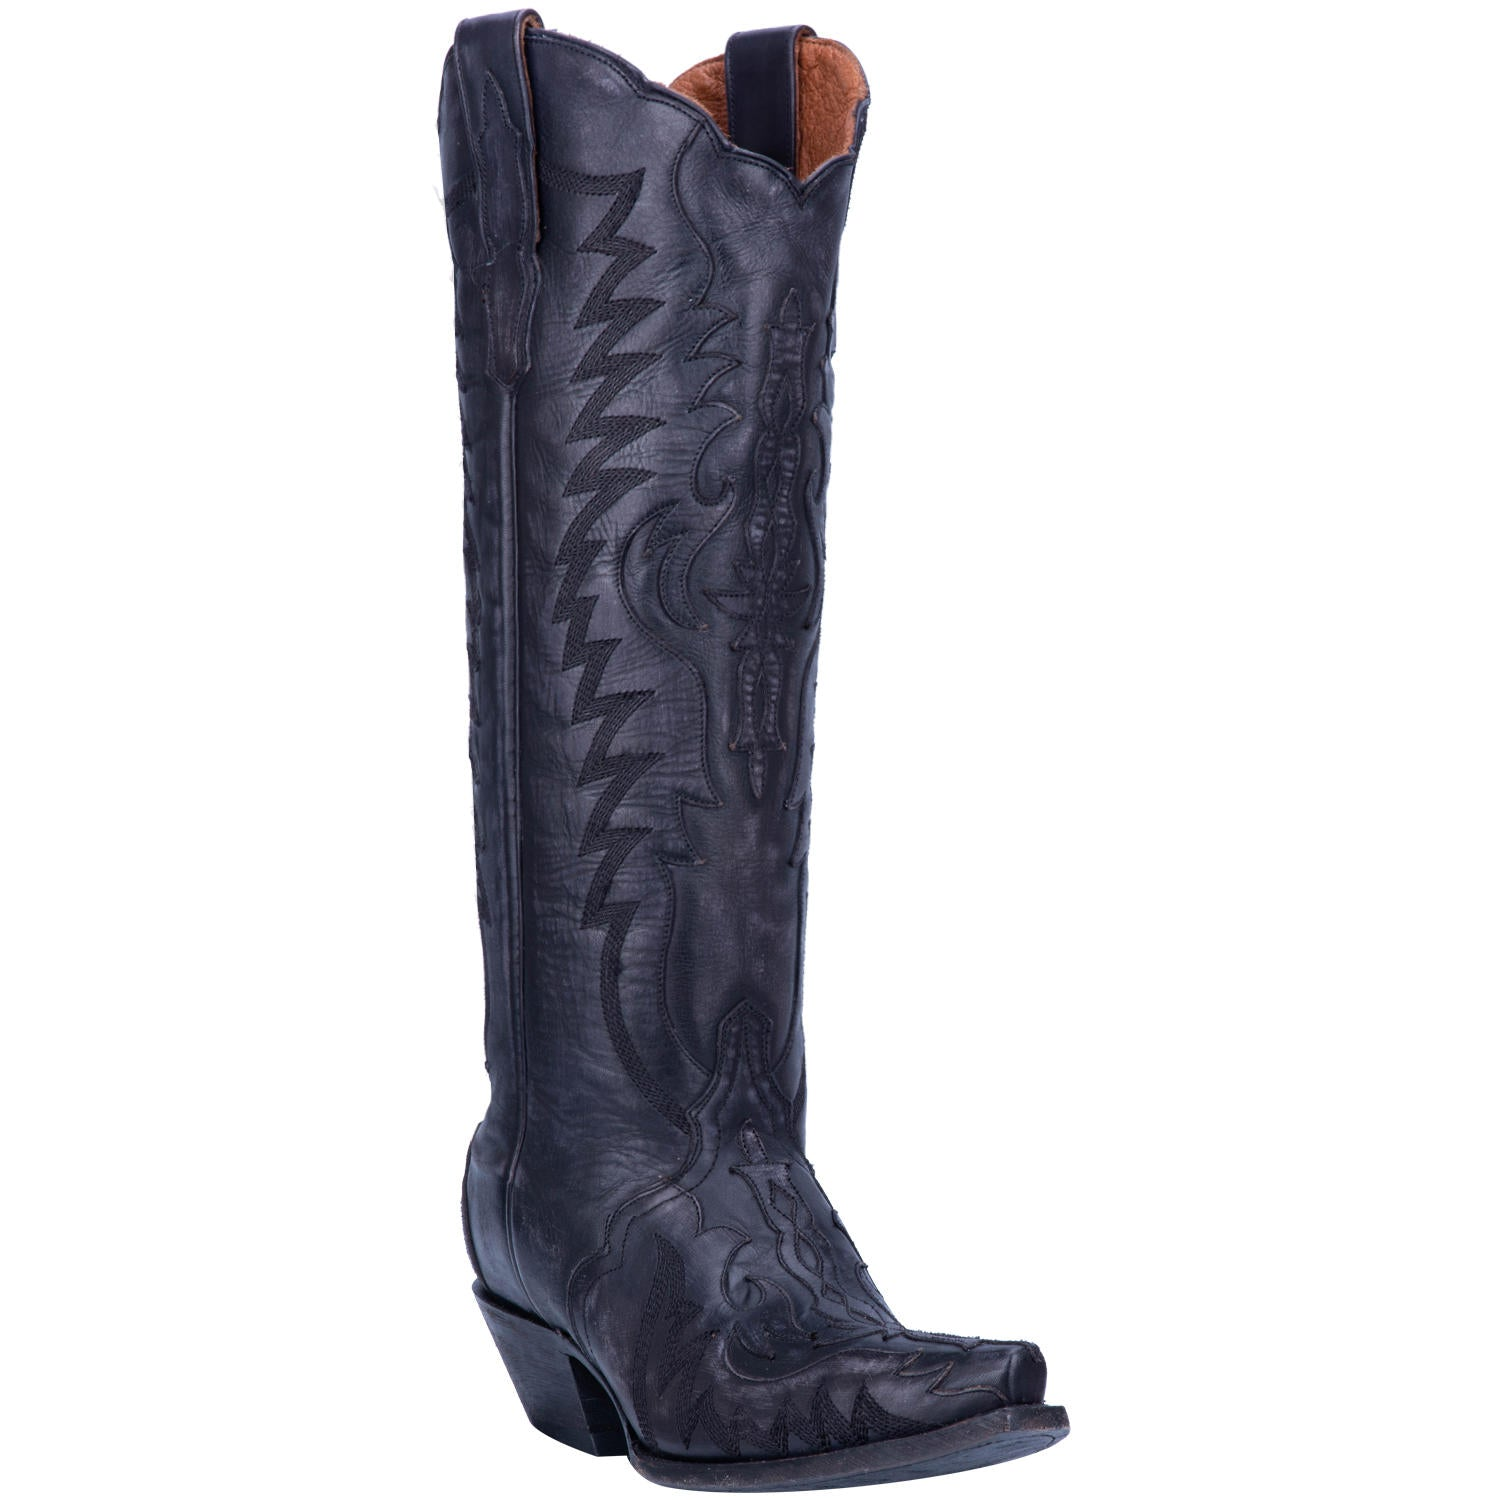 Women's Dan Post Hallie Boot #DP4027